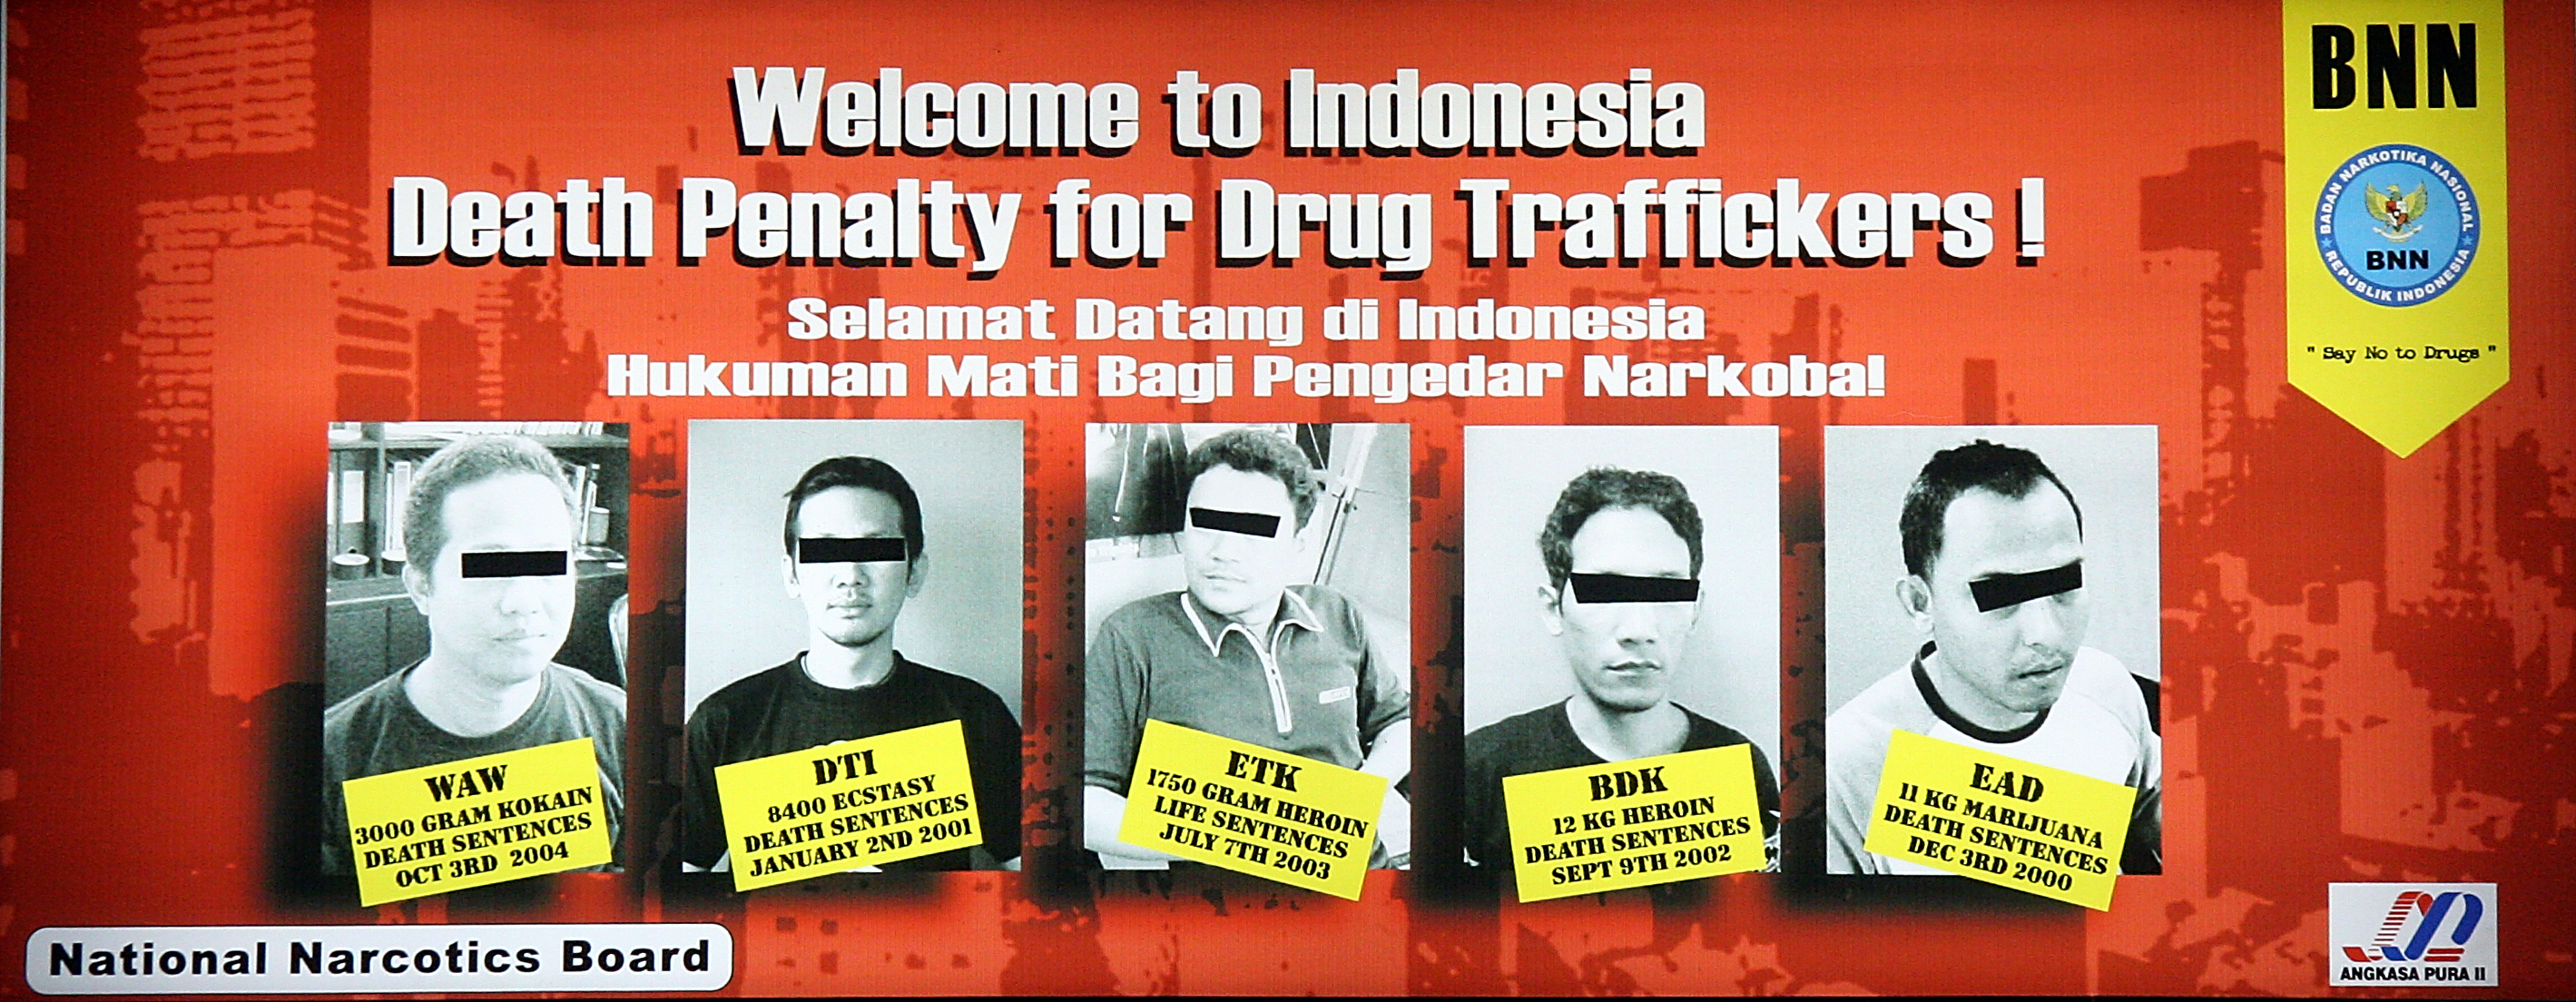 welcome poster, Airport Indonesia.jpg - Indonesia welcome poster